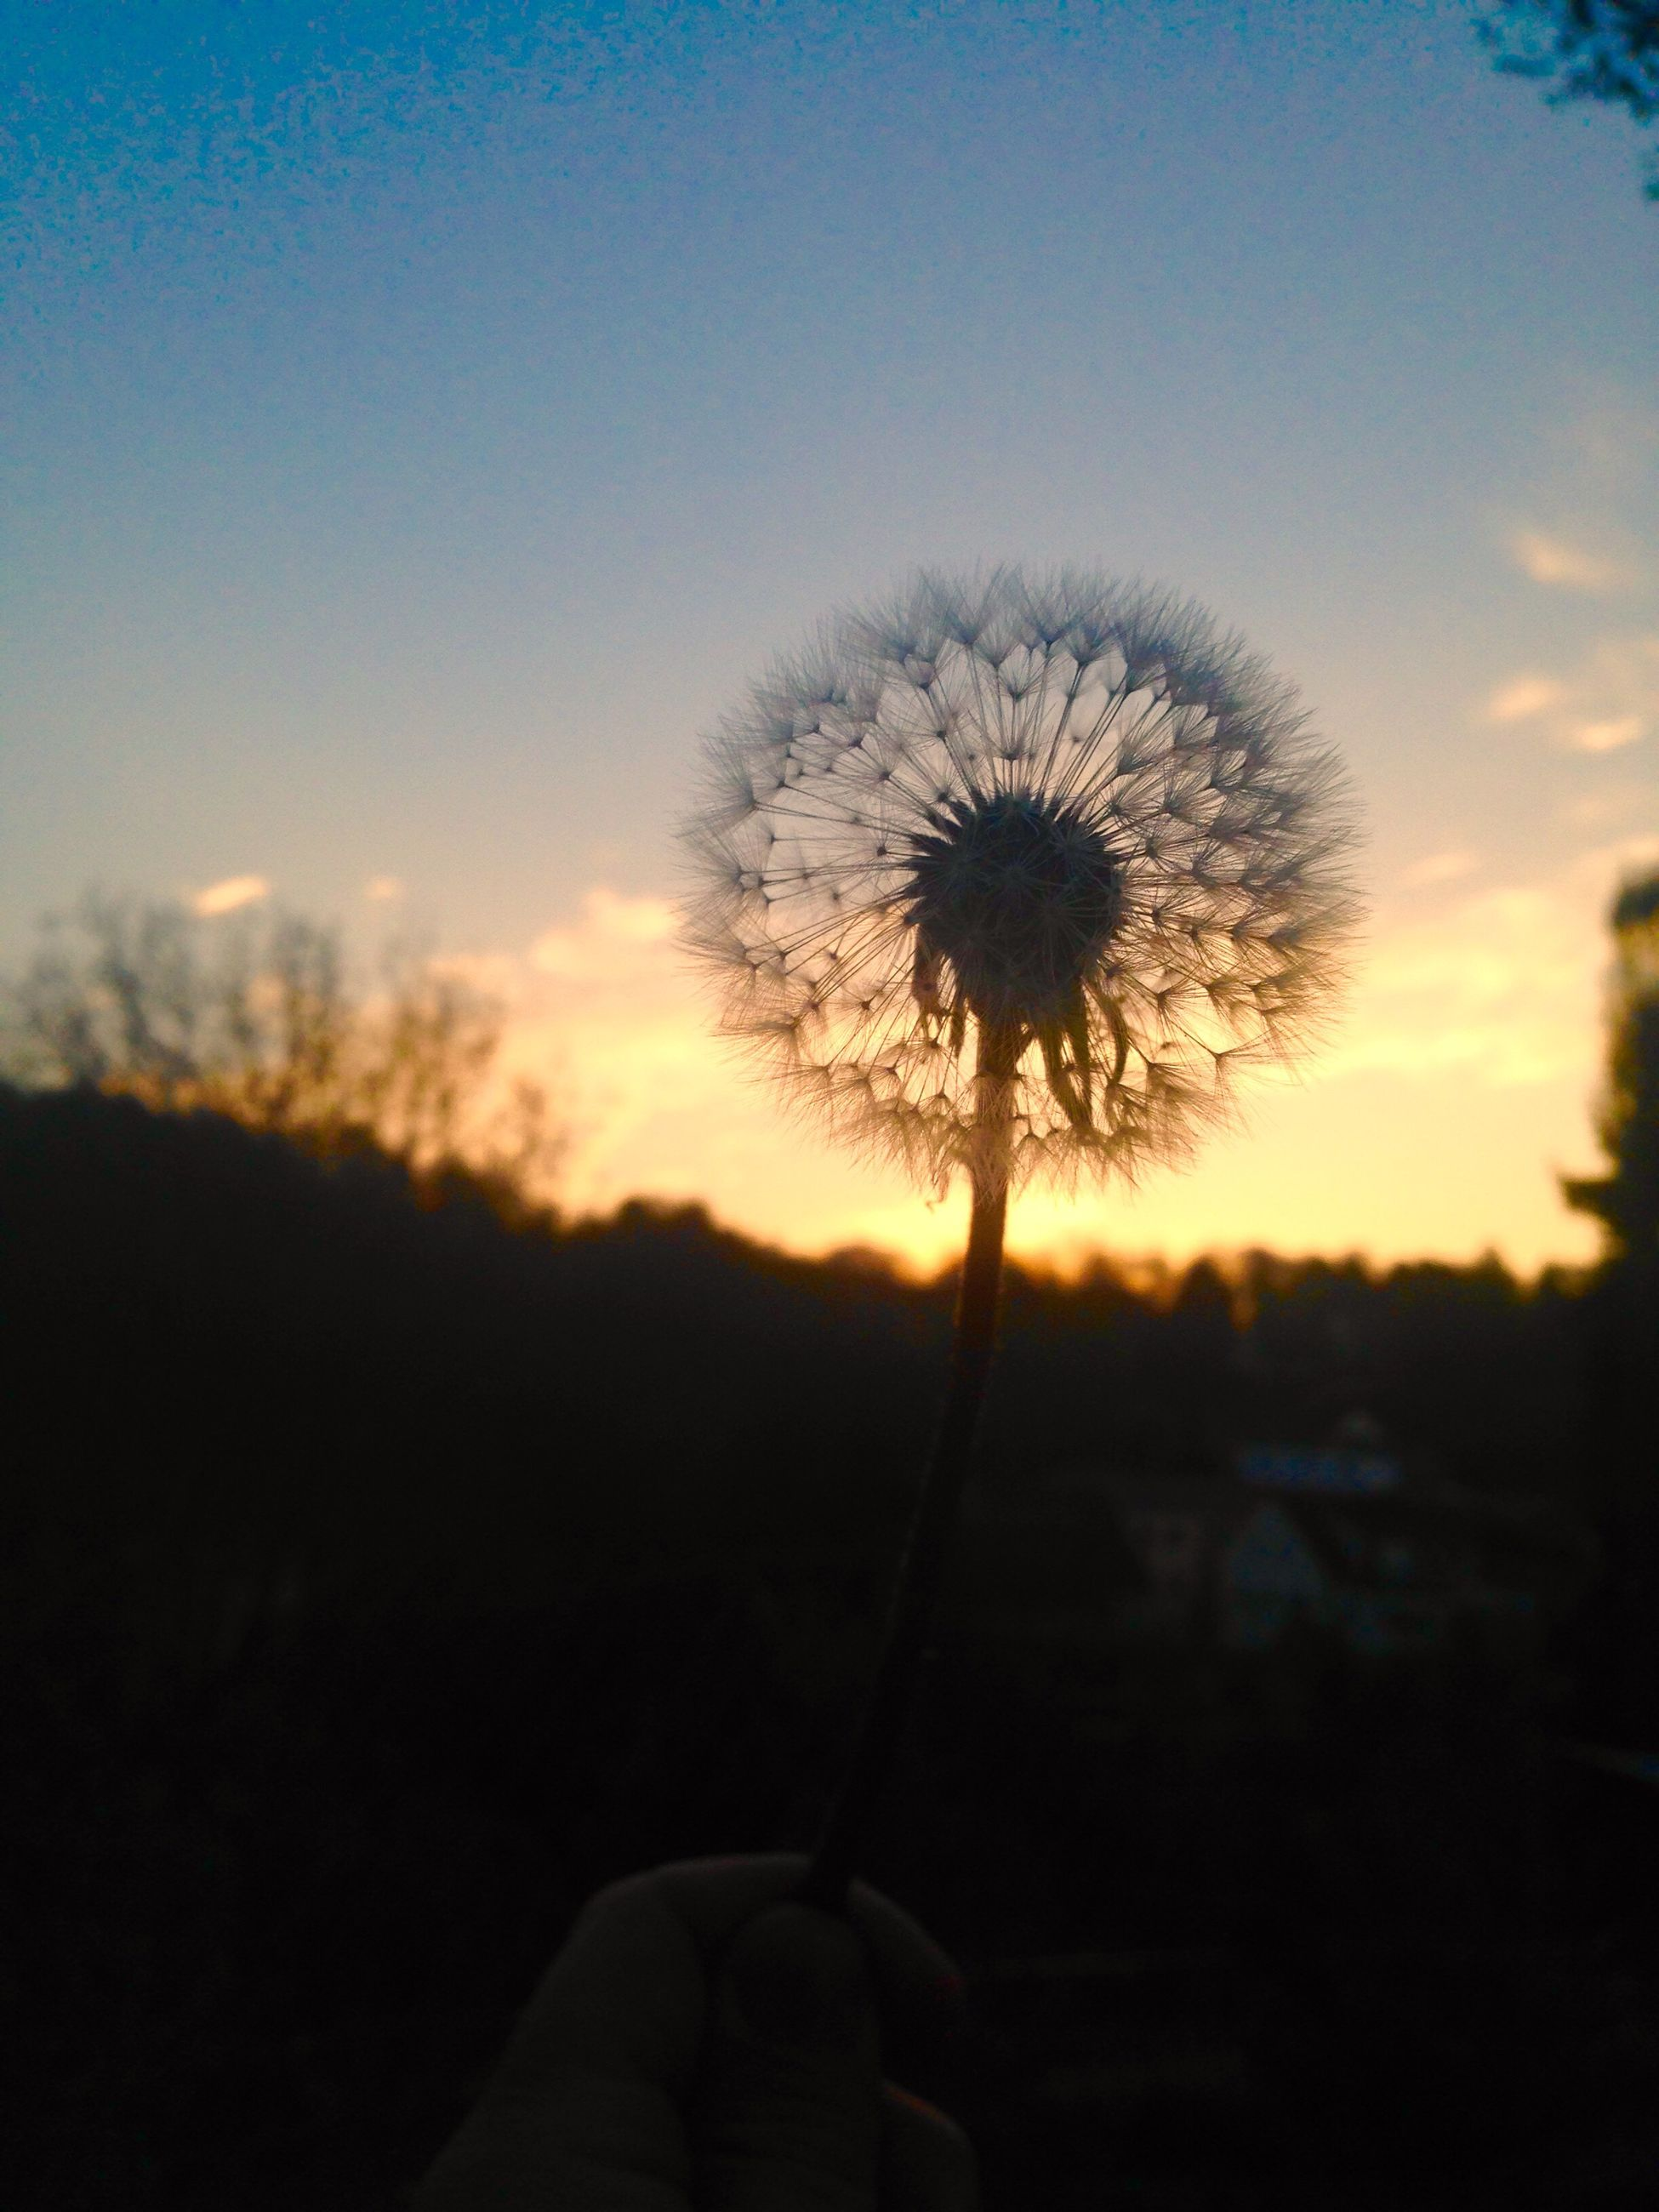 flower, dandelion, sunset, nature, beauty in nature, silhouette, plant, fragility, growth, holding, one person, human hand, sky, outdoors, flower head, real people, close-up, human body part, freshness, day, people